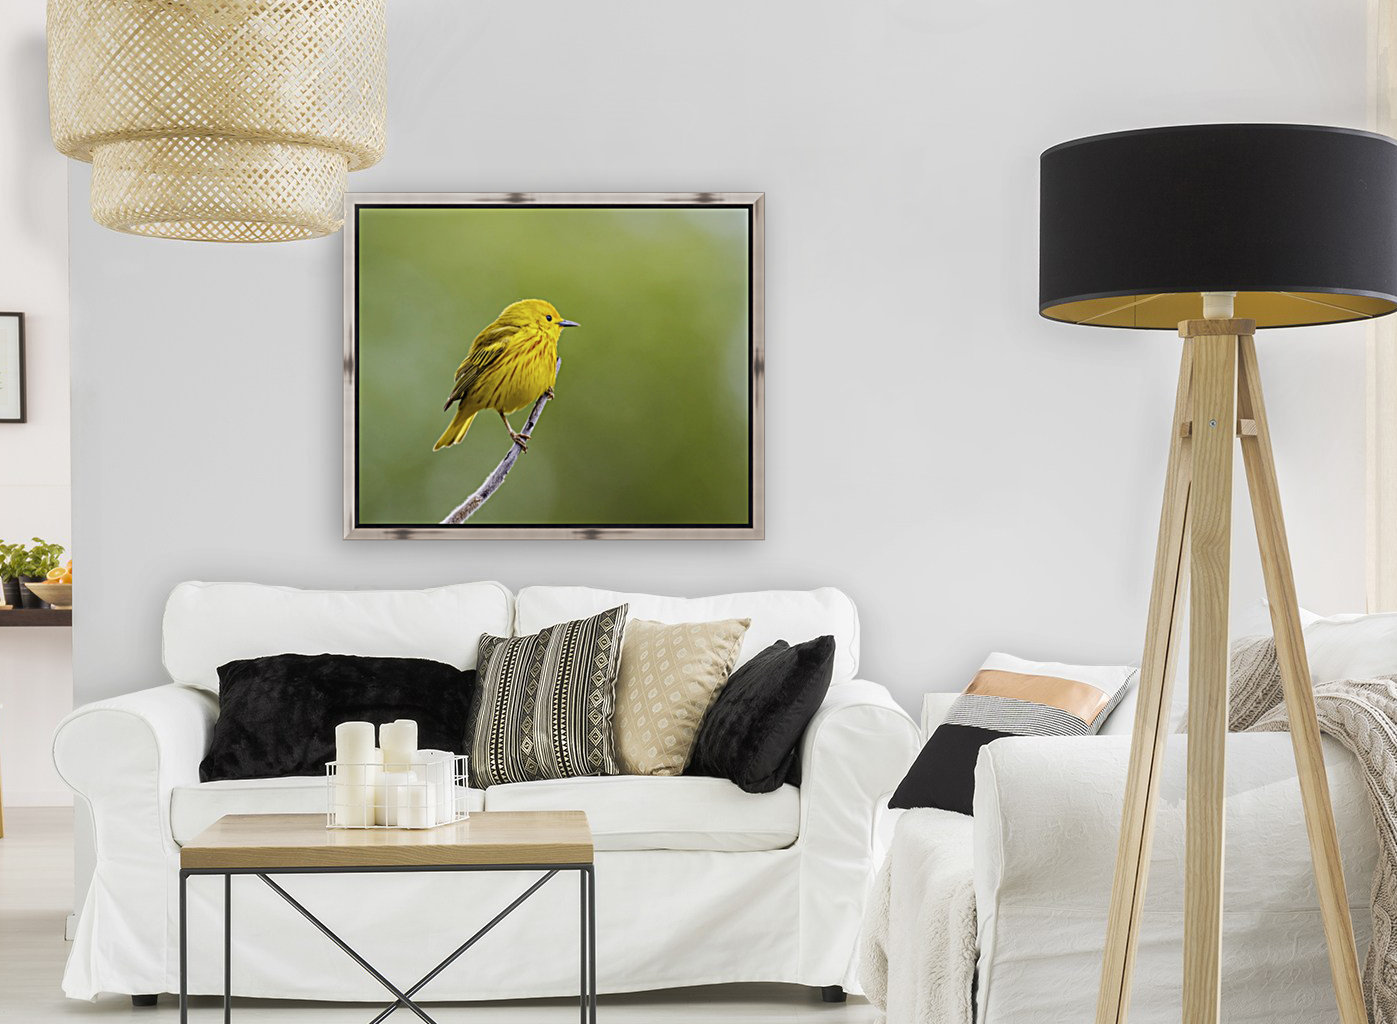 Yellow warbler (Setophaga petechia) perched during spring time; Chateauguay, Quebec, Canada  Art